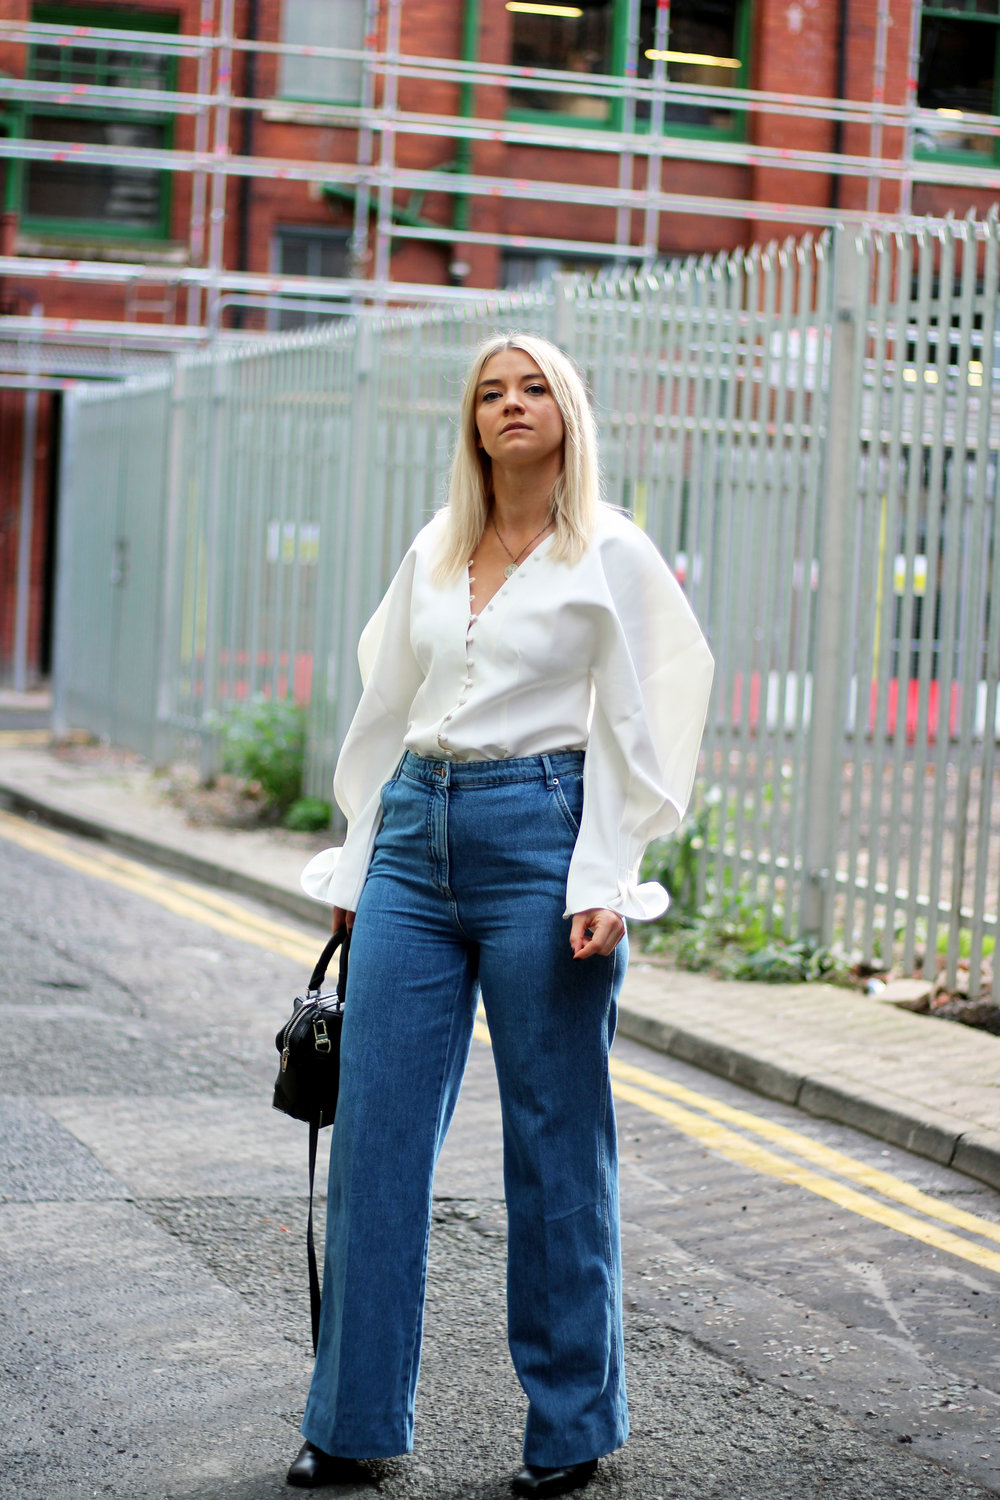 independent brands, instagram shopping, oh hey gilr, white blouse, joey taylor, northern magpie 2